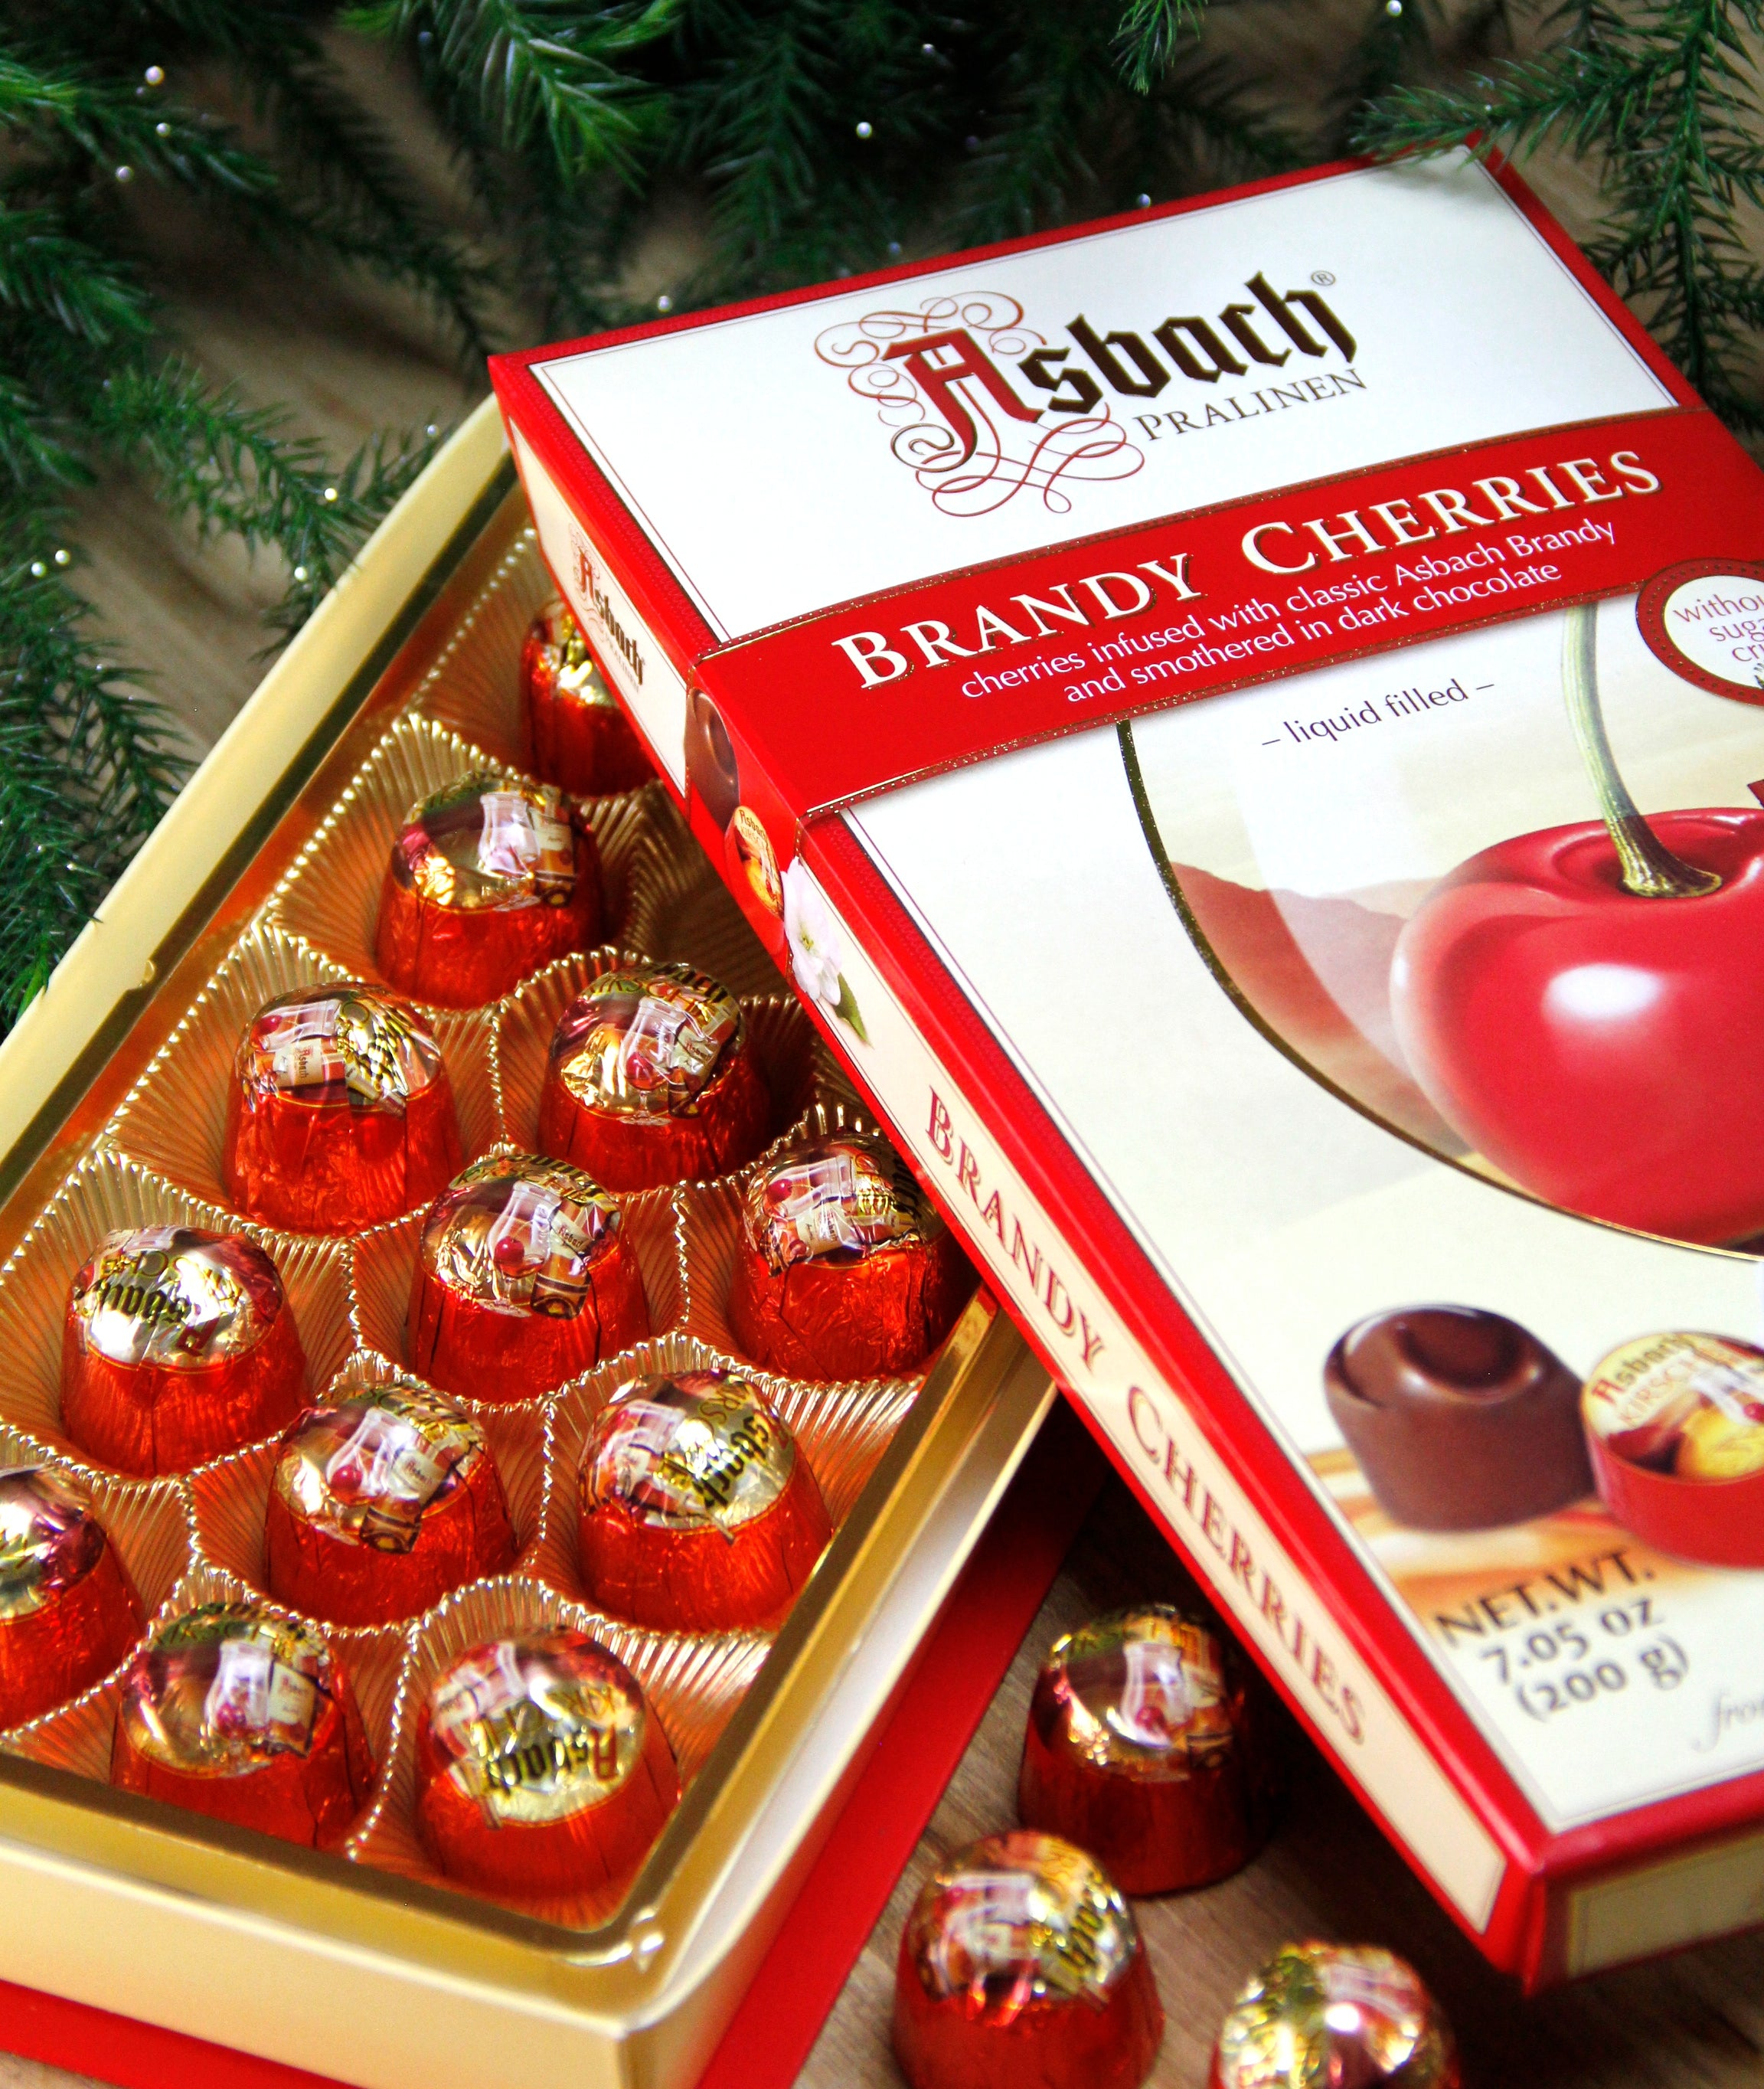 Asbach Brandy Cherries, Dark Chocolate Covered Cherries